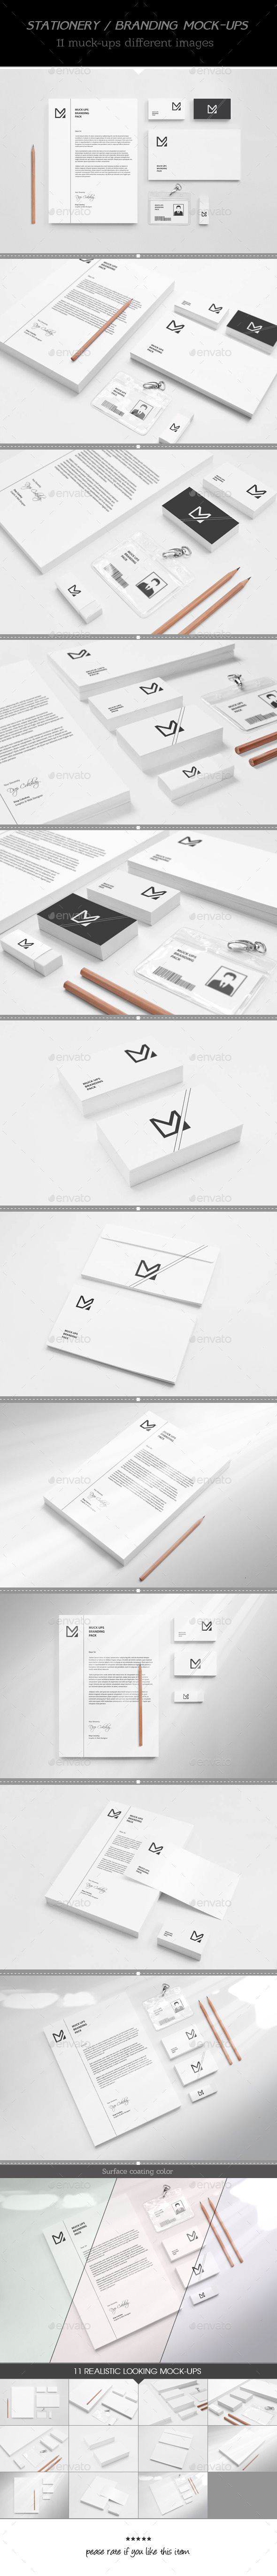 Home Office Stationery Mockups (Stationery)